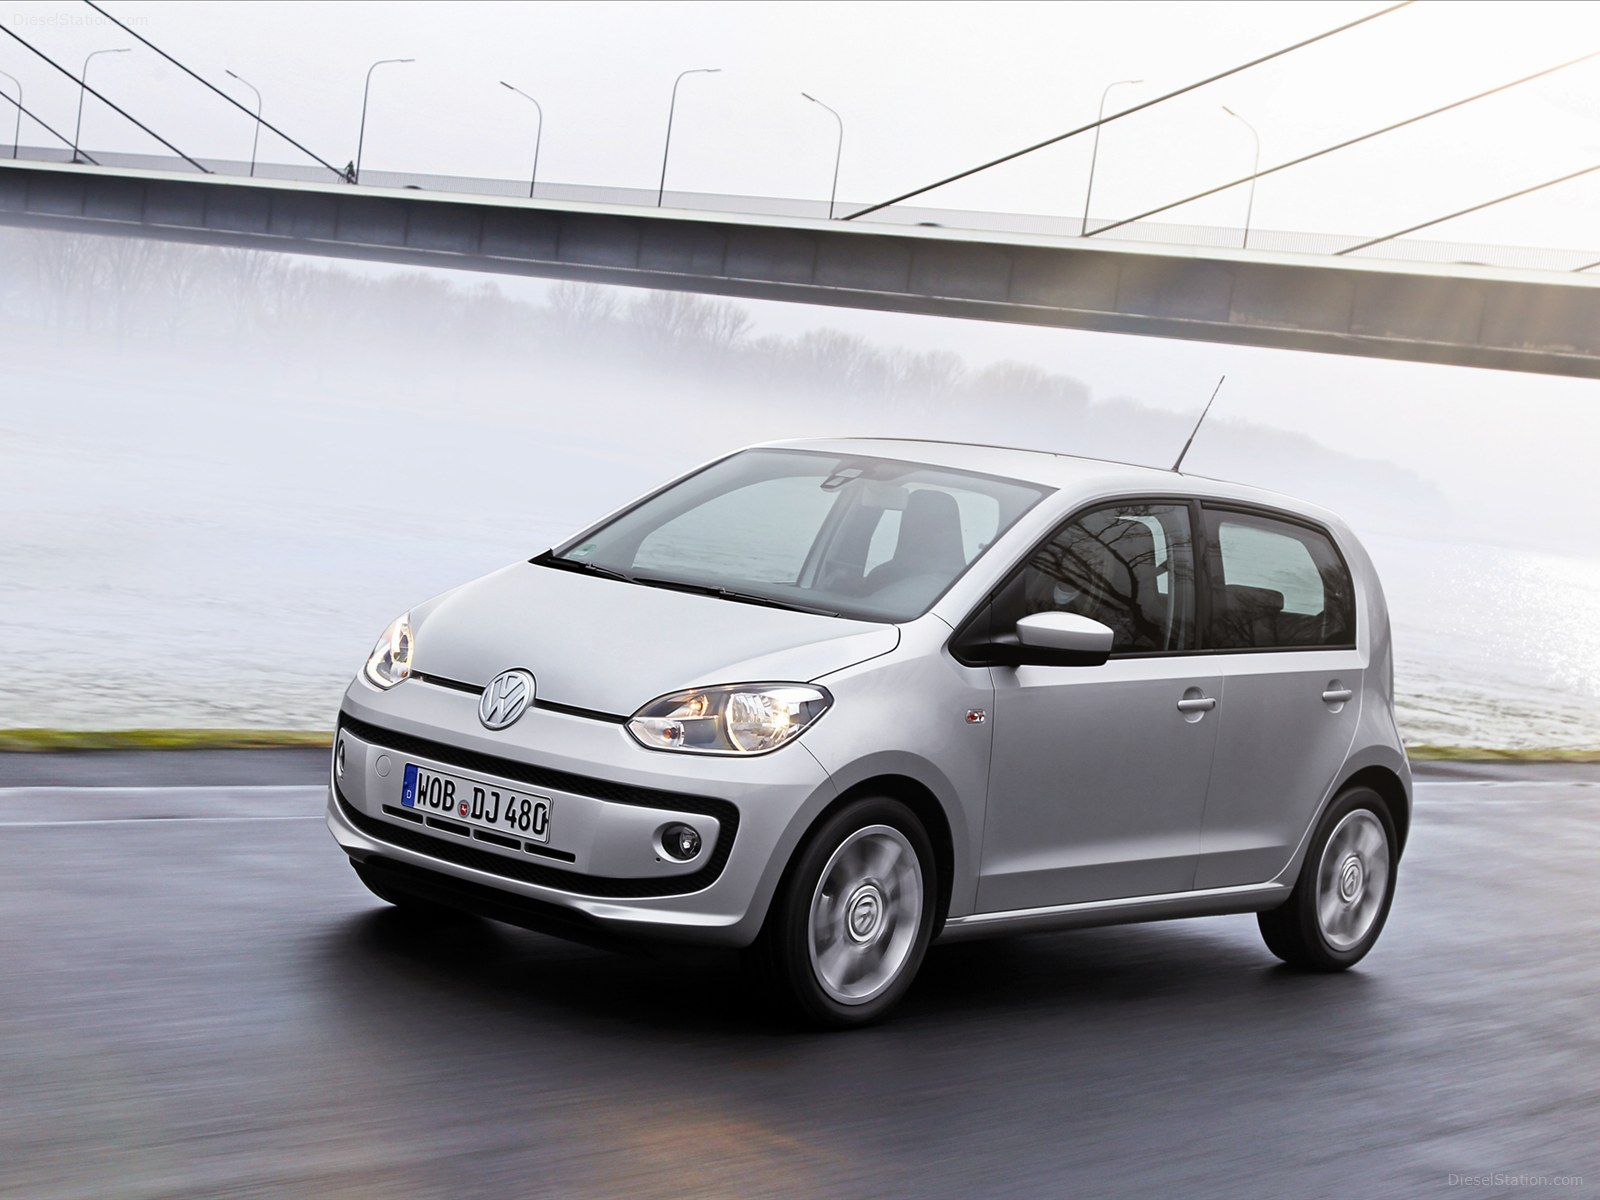 2019 Volkswagen Up 4 door photo - 3